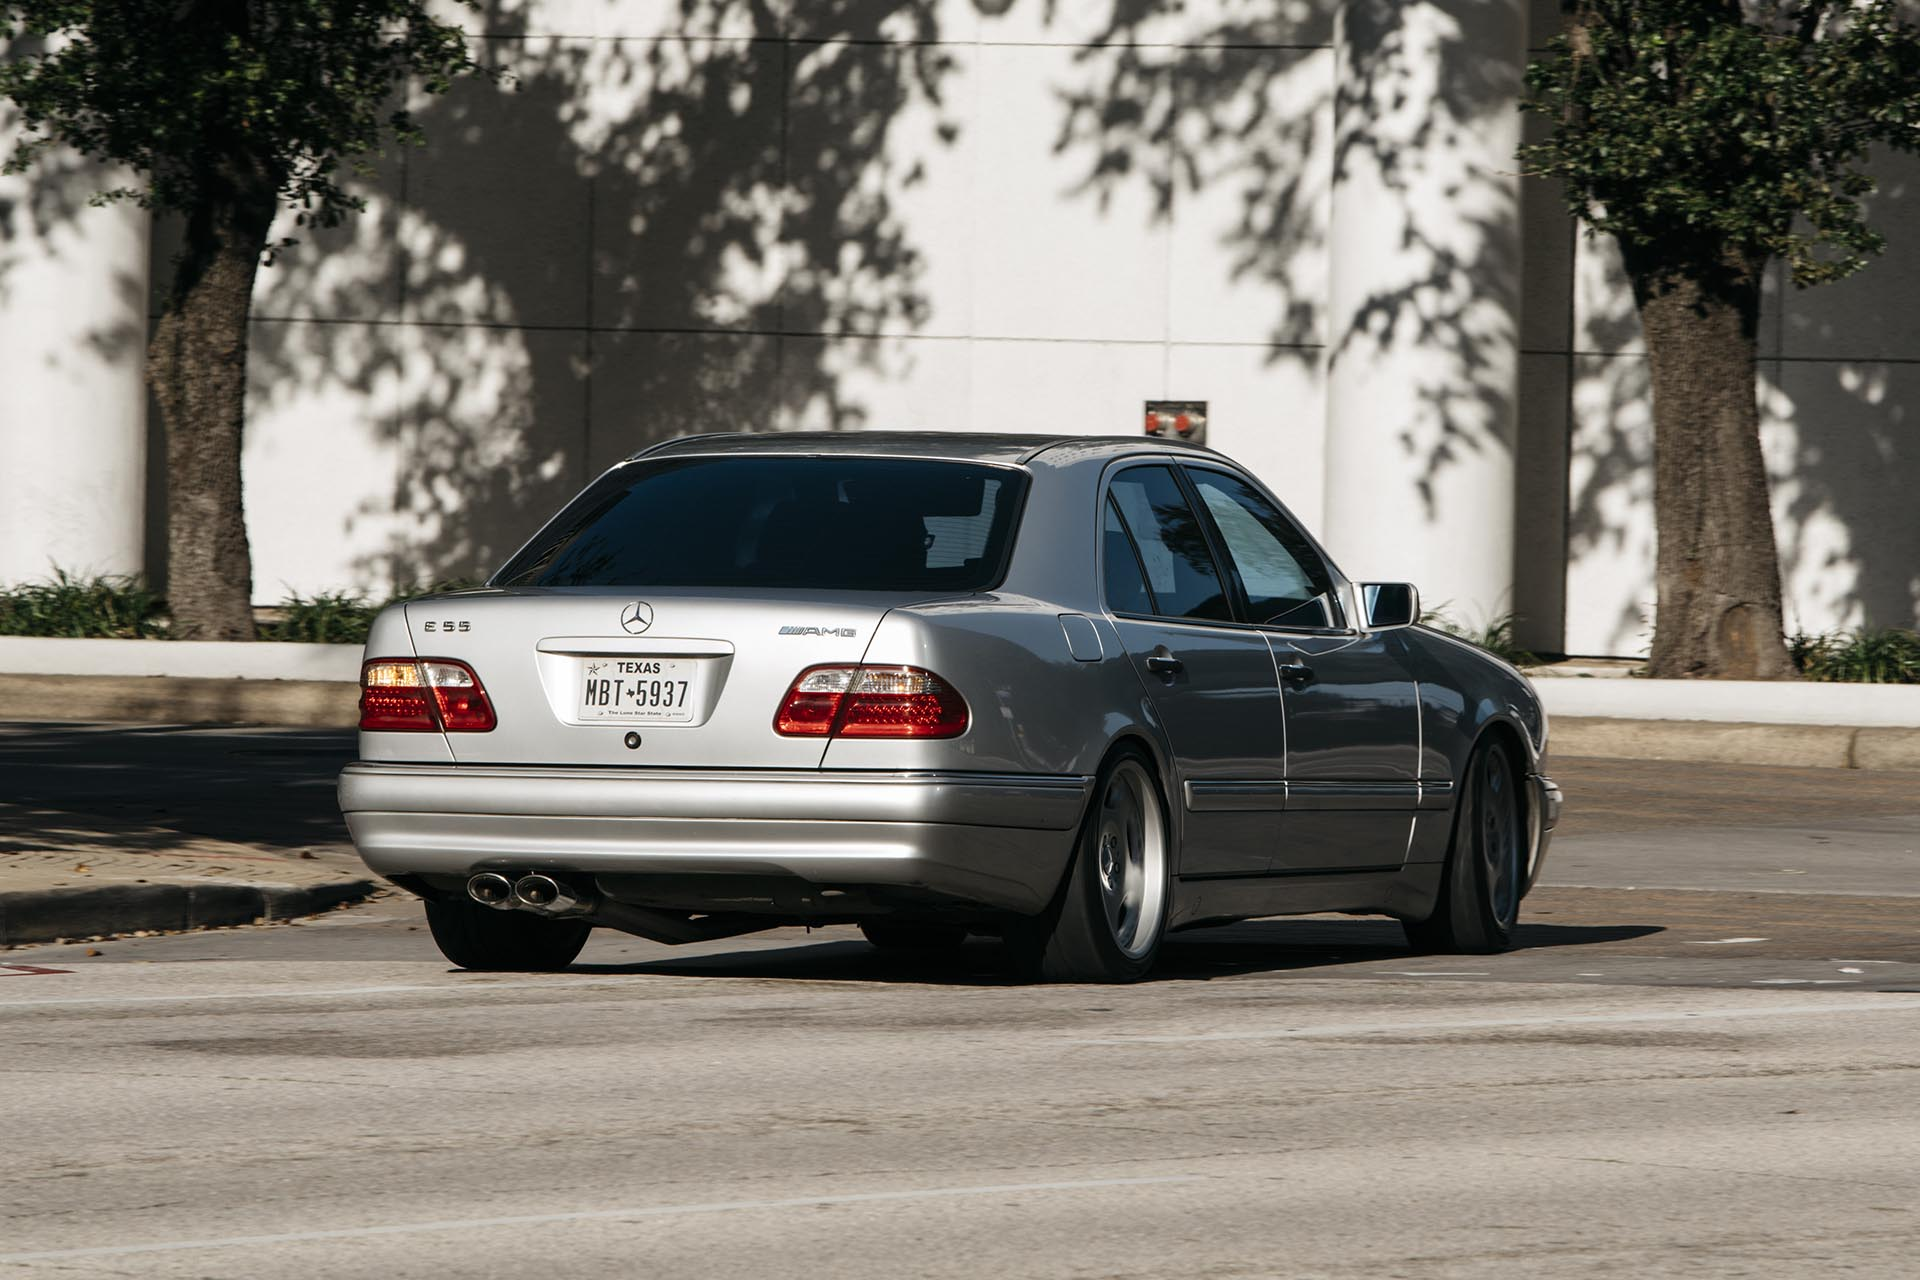 02_Mercedes-Benz E55 AMG manual swapped action03